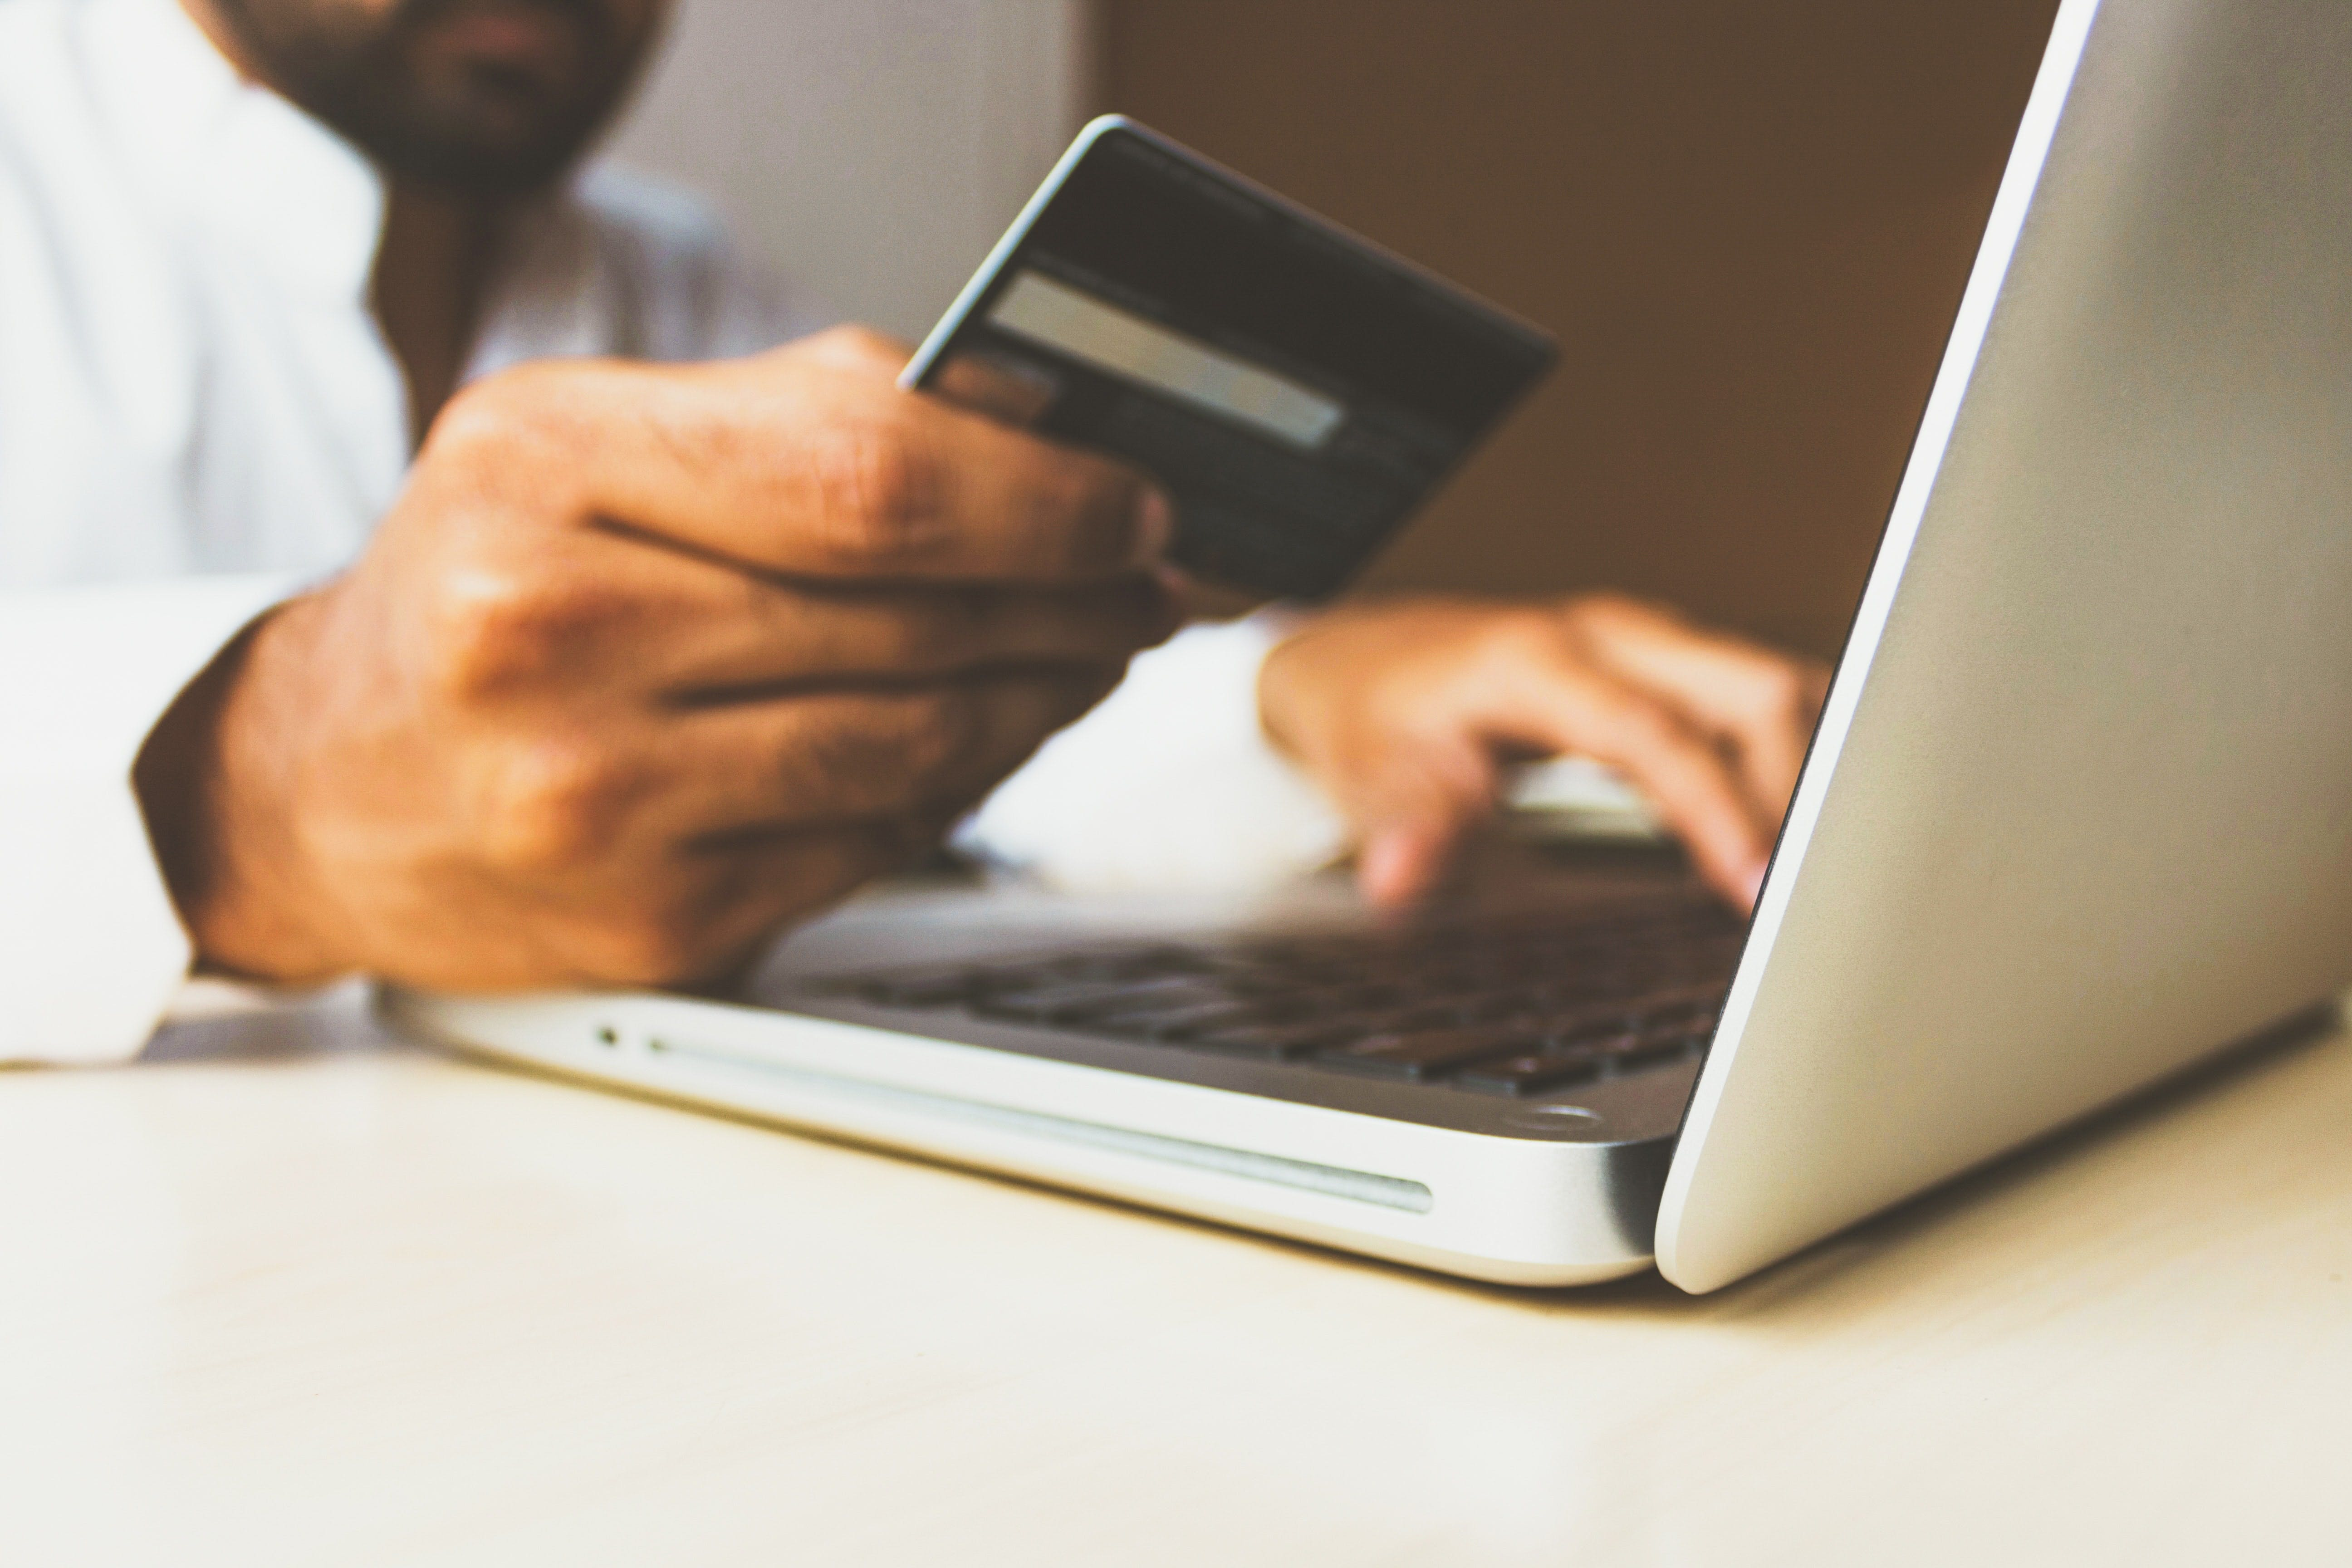 Man holding credit card in front of laptop screen, ready to make a payment